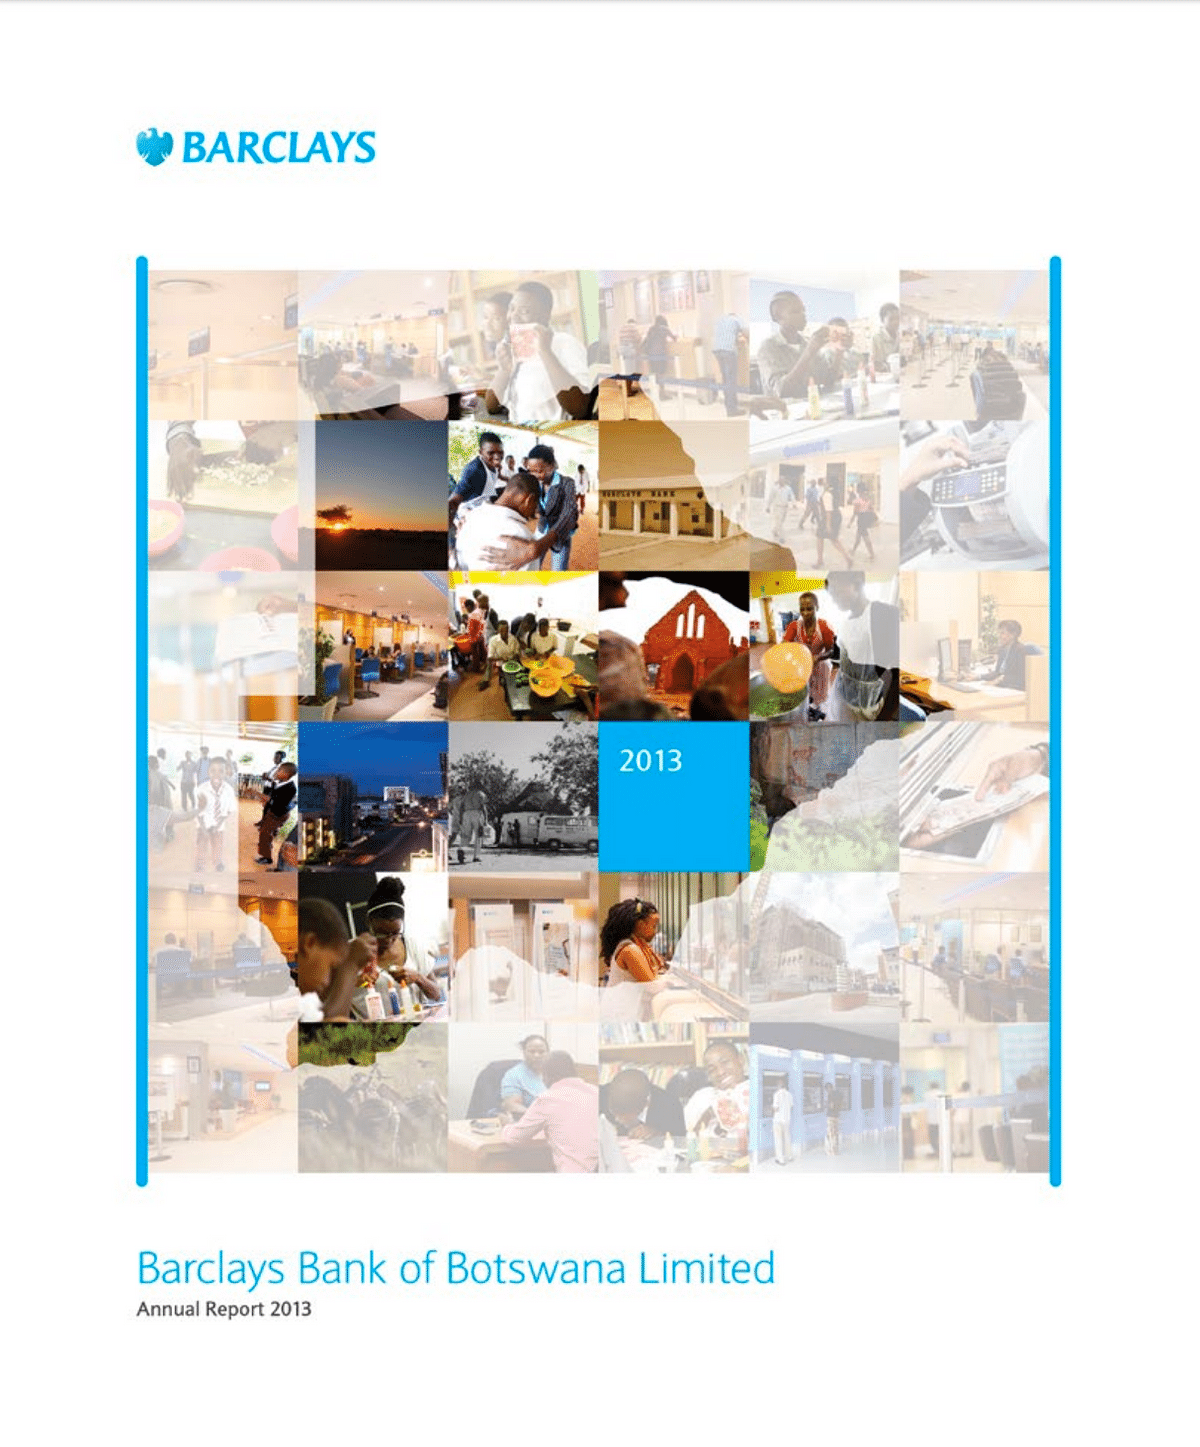 Barclays Bank of Botswana Annual Report 2013 cover